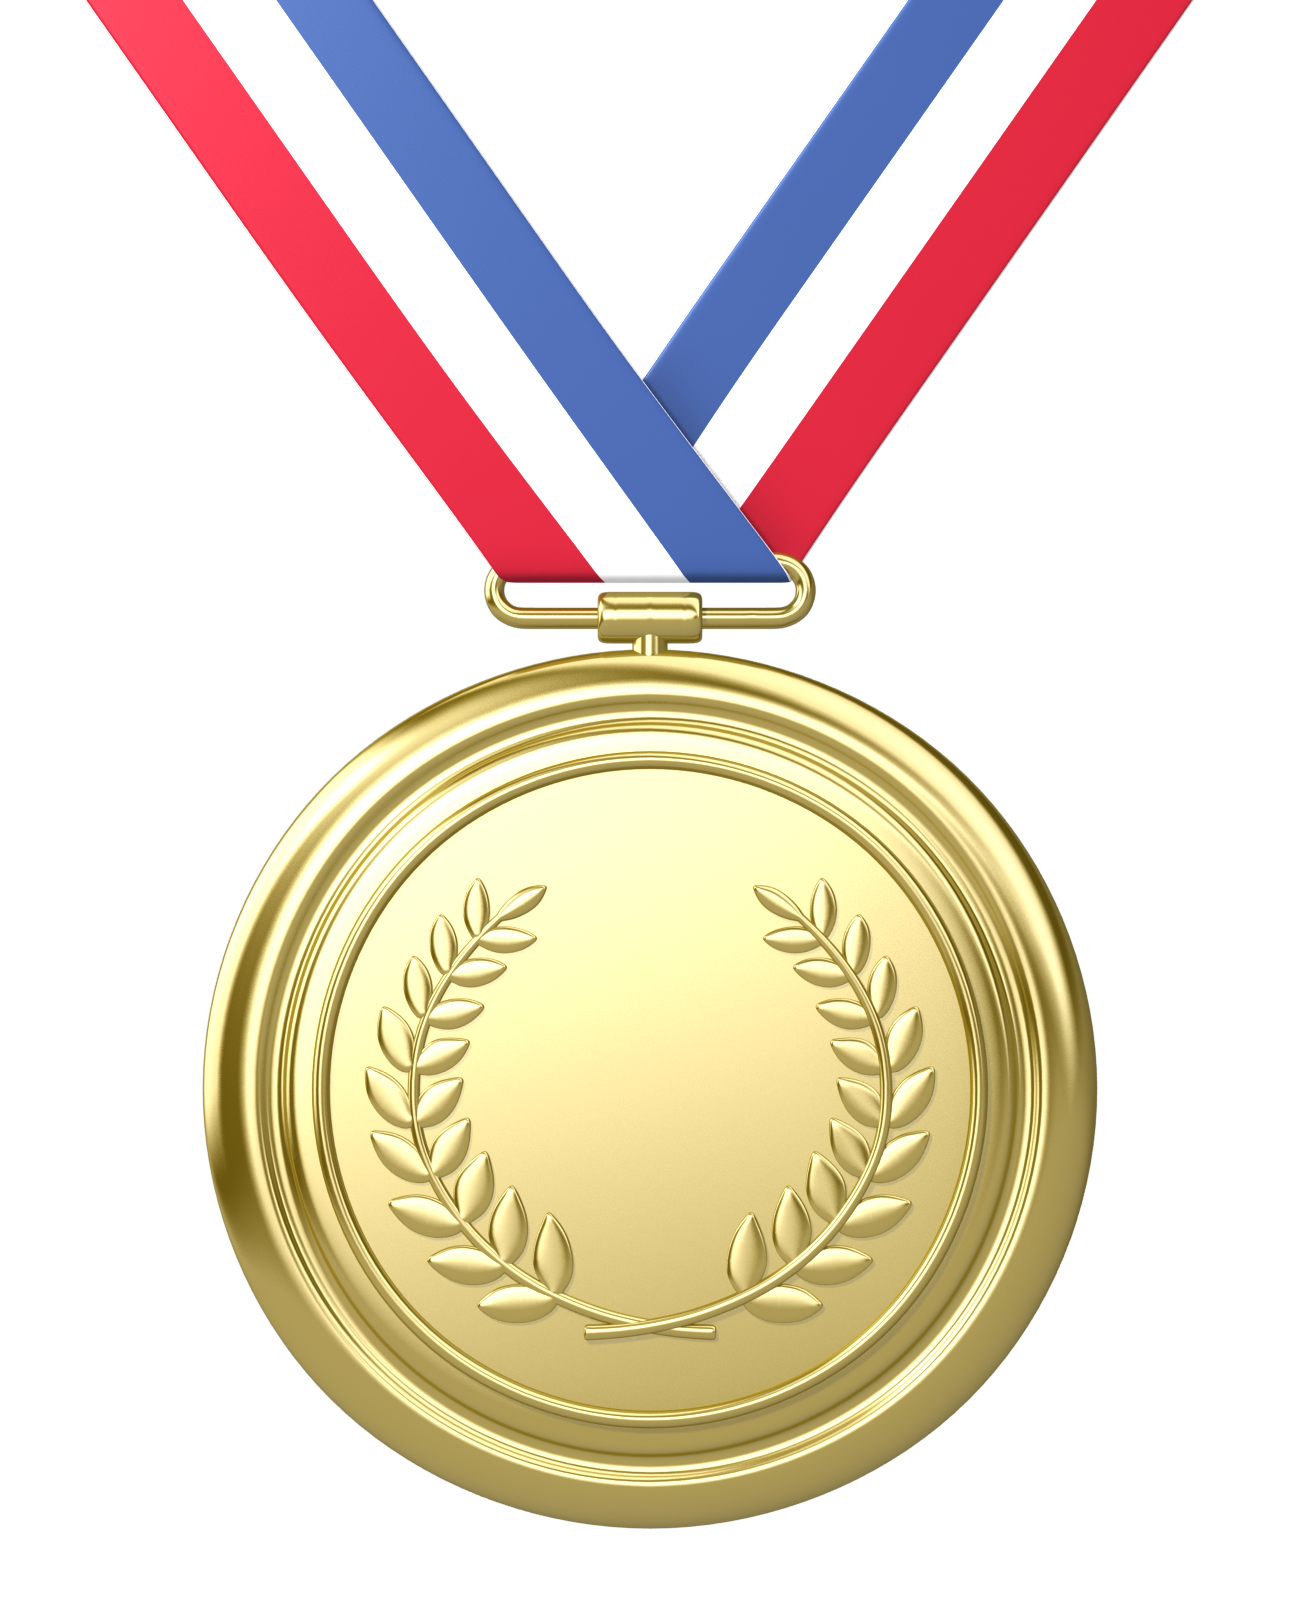 7 personal gold medal achievements olympic medals volunteer management gold cup ribbon design [ 1300 x 1600 Pixel ]